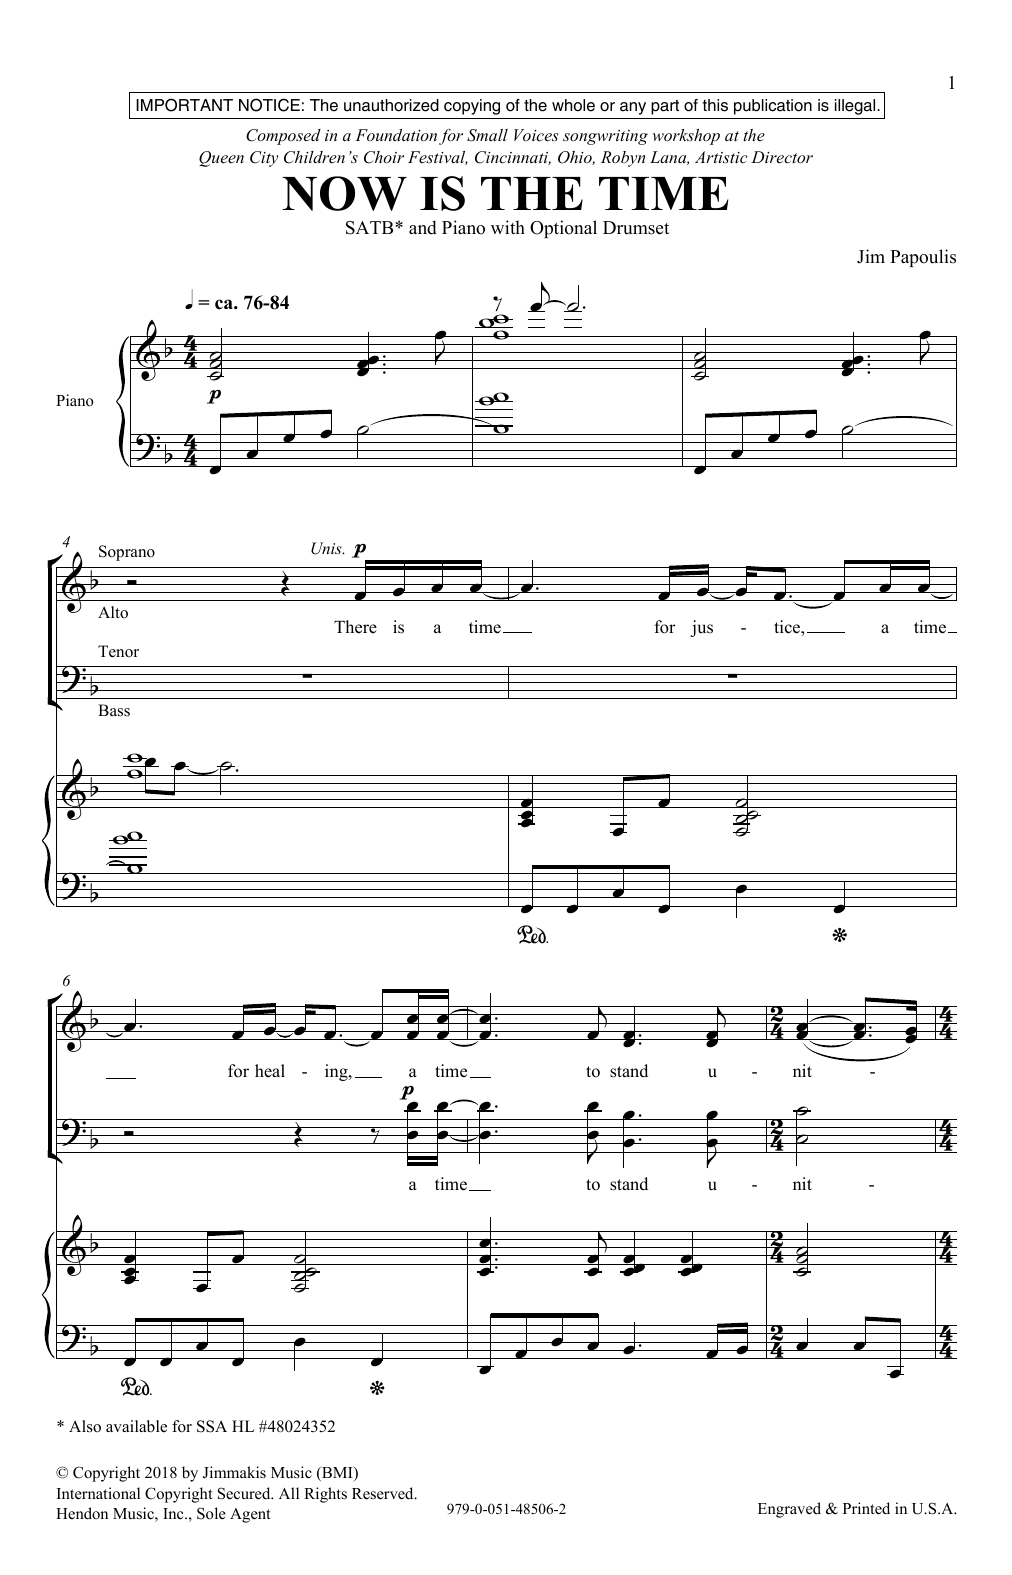 Now Is The Time (SATB Choir)